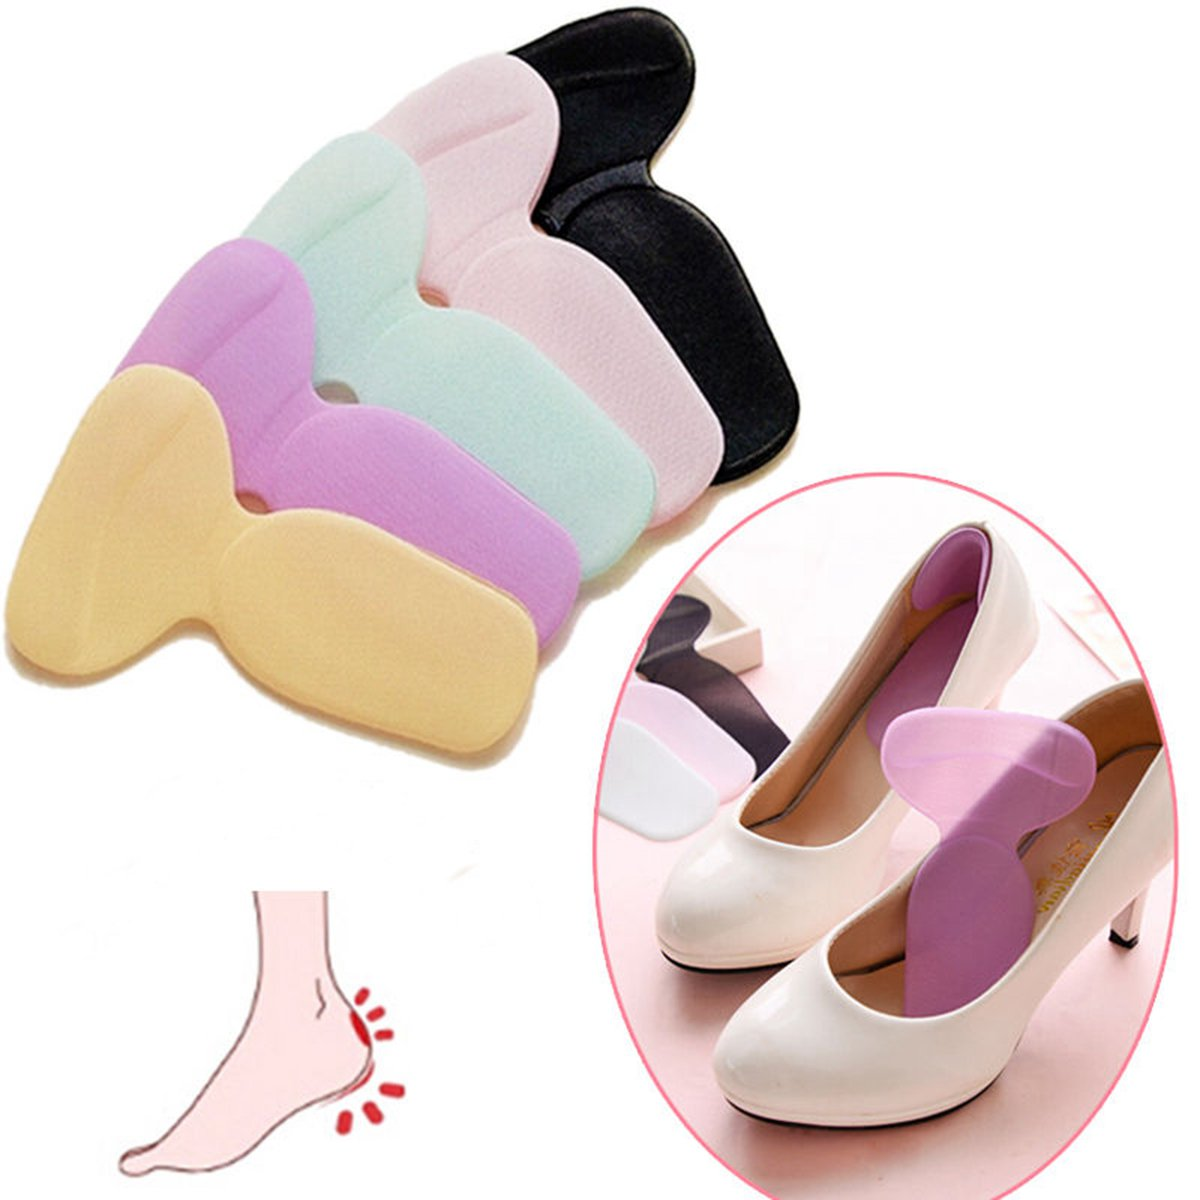 1Pair Soft Silicone High Heel Foot Care Cushion Shoe Insert Dance Insole Pads SPECIAL TODAY !